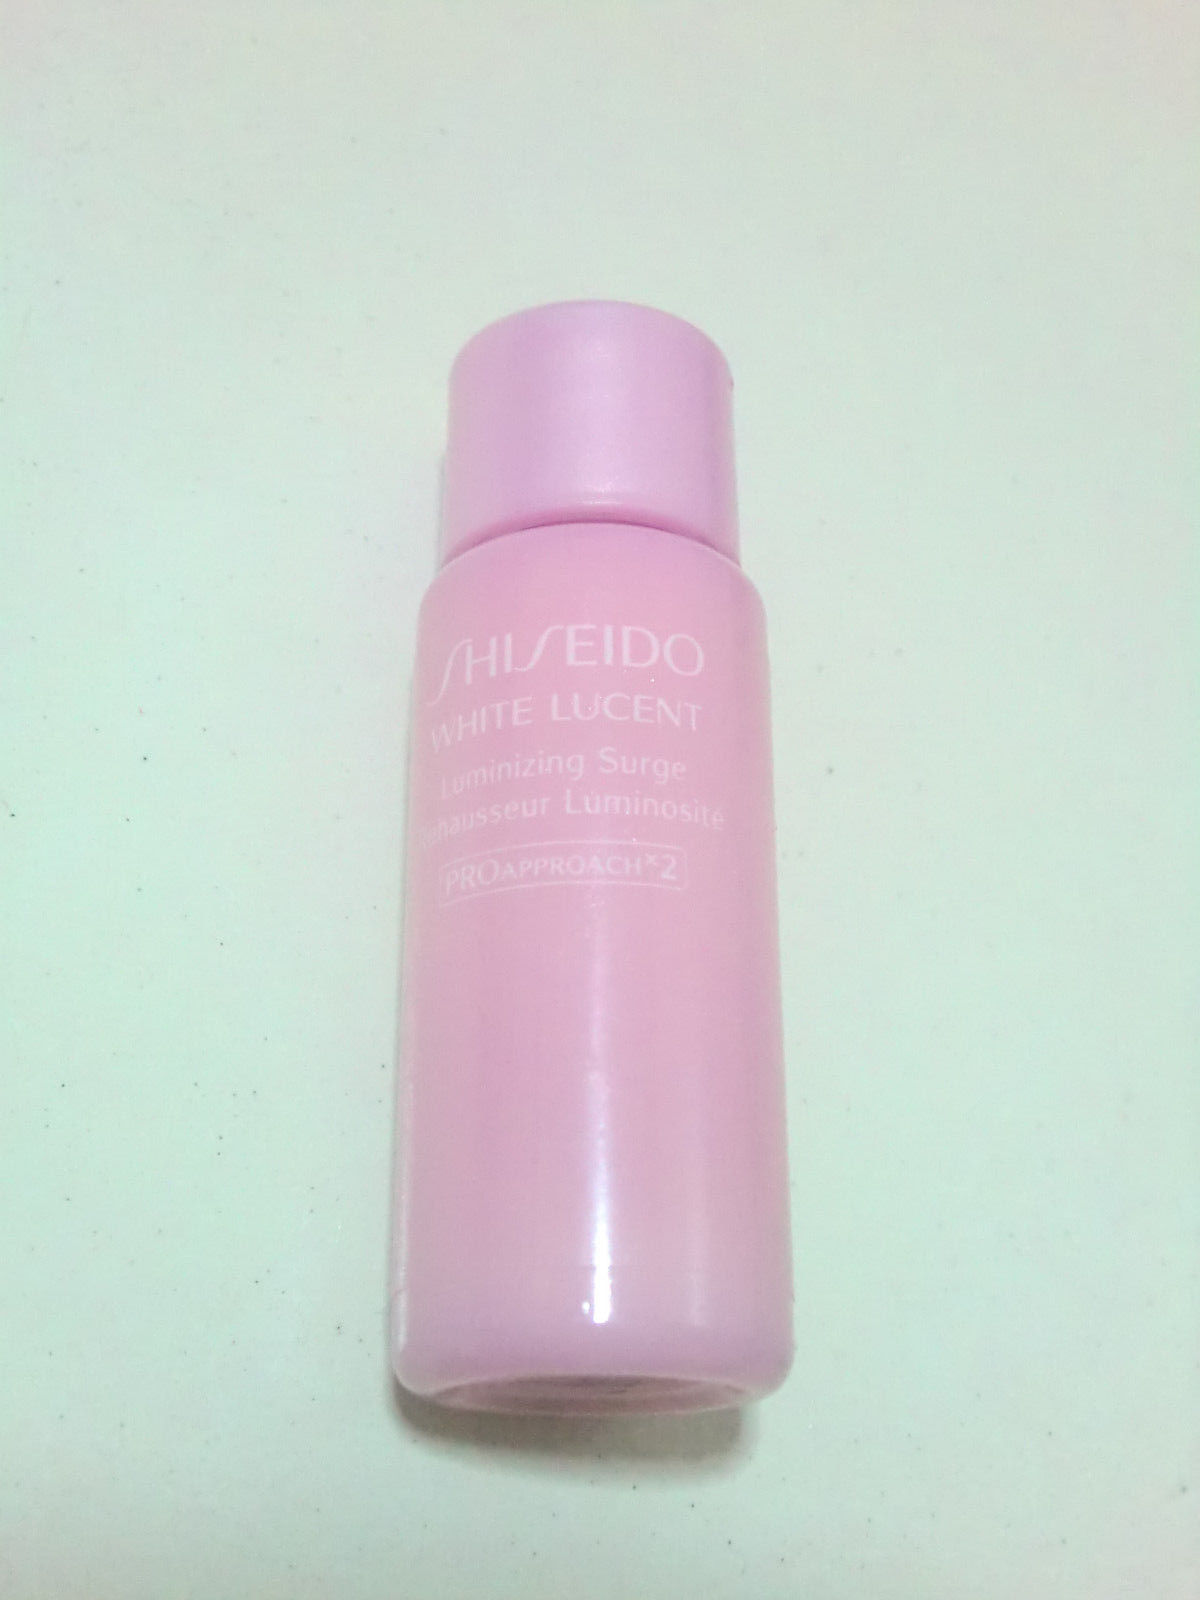 Primary image for Shiseido White Lucent Luminizing Surge Emulsion SAMPLE 7ml/ 0.23oz